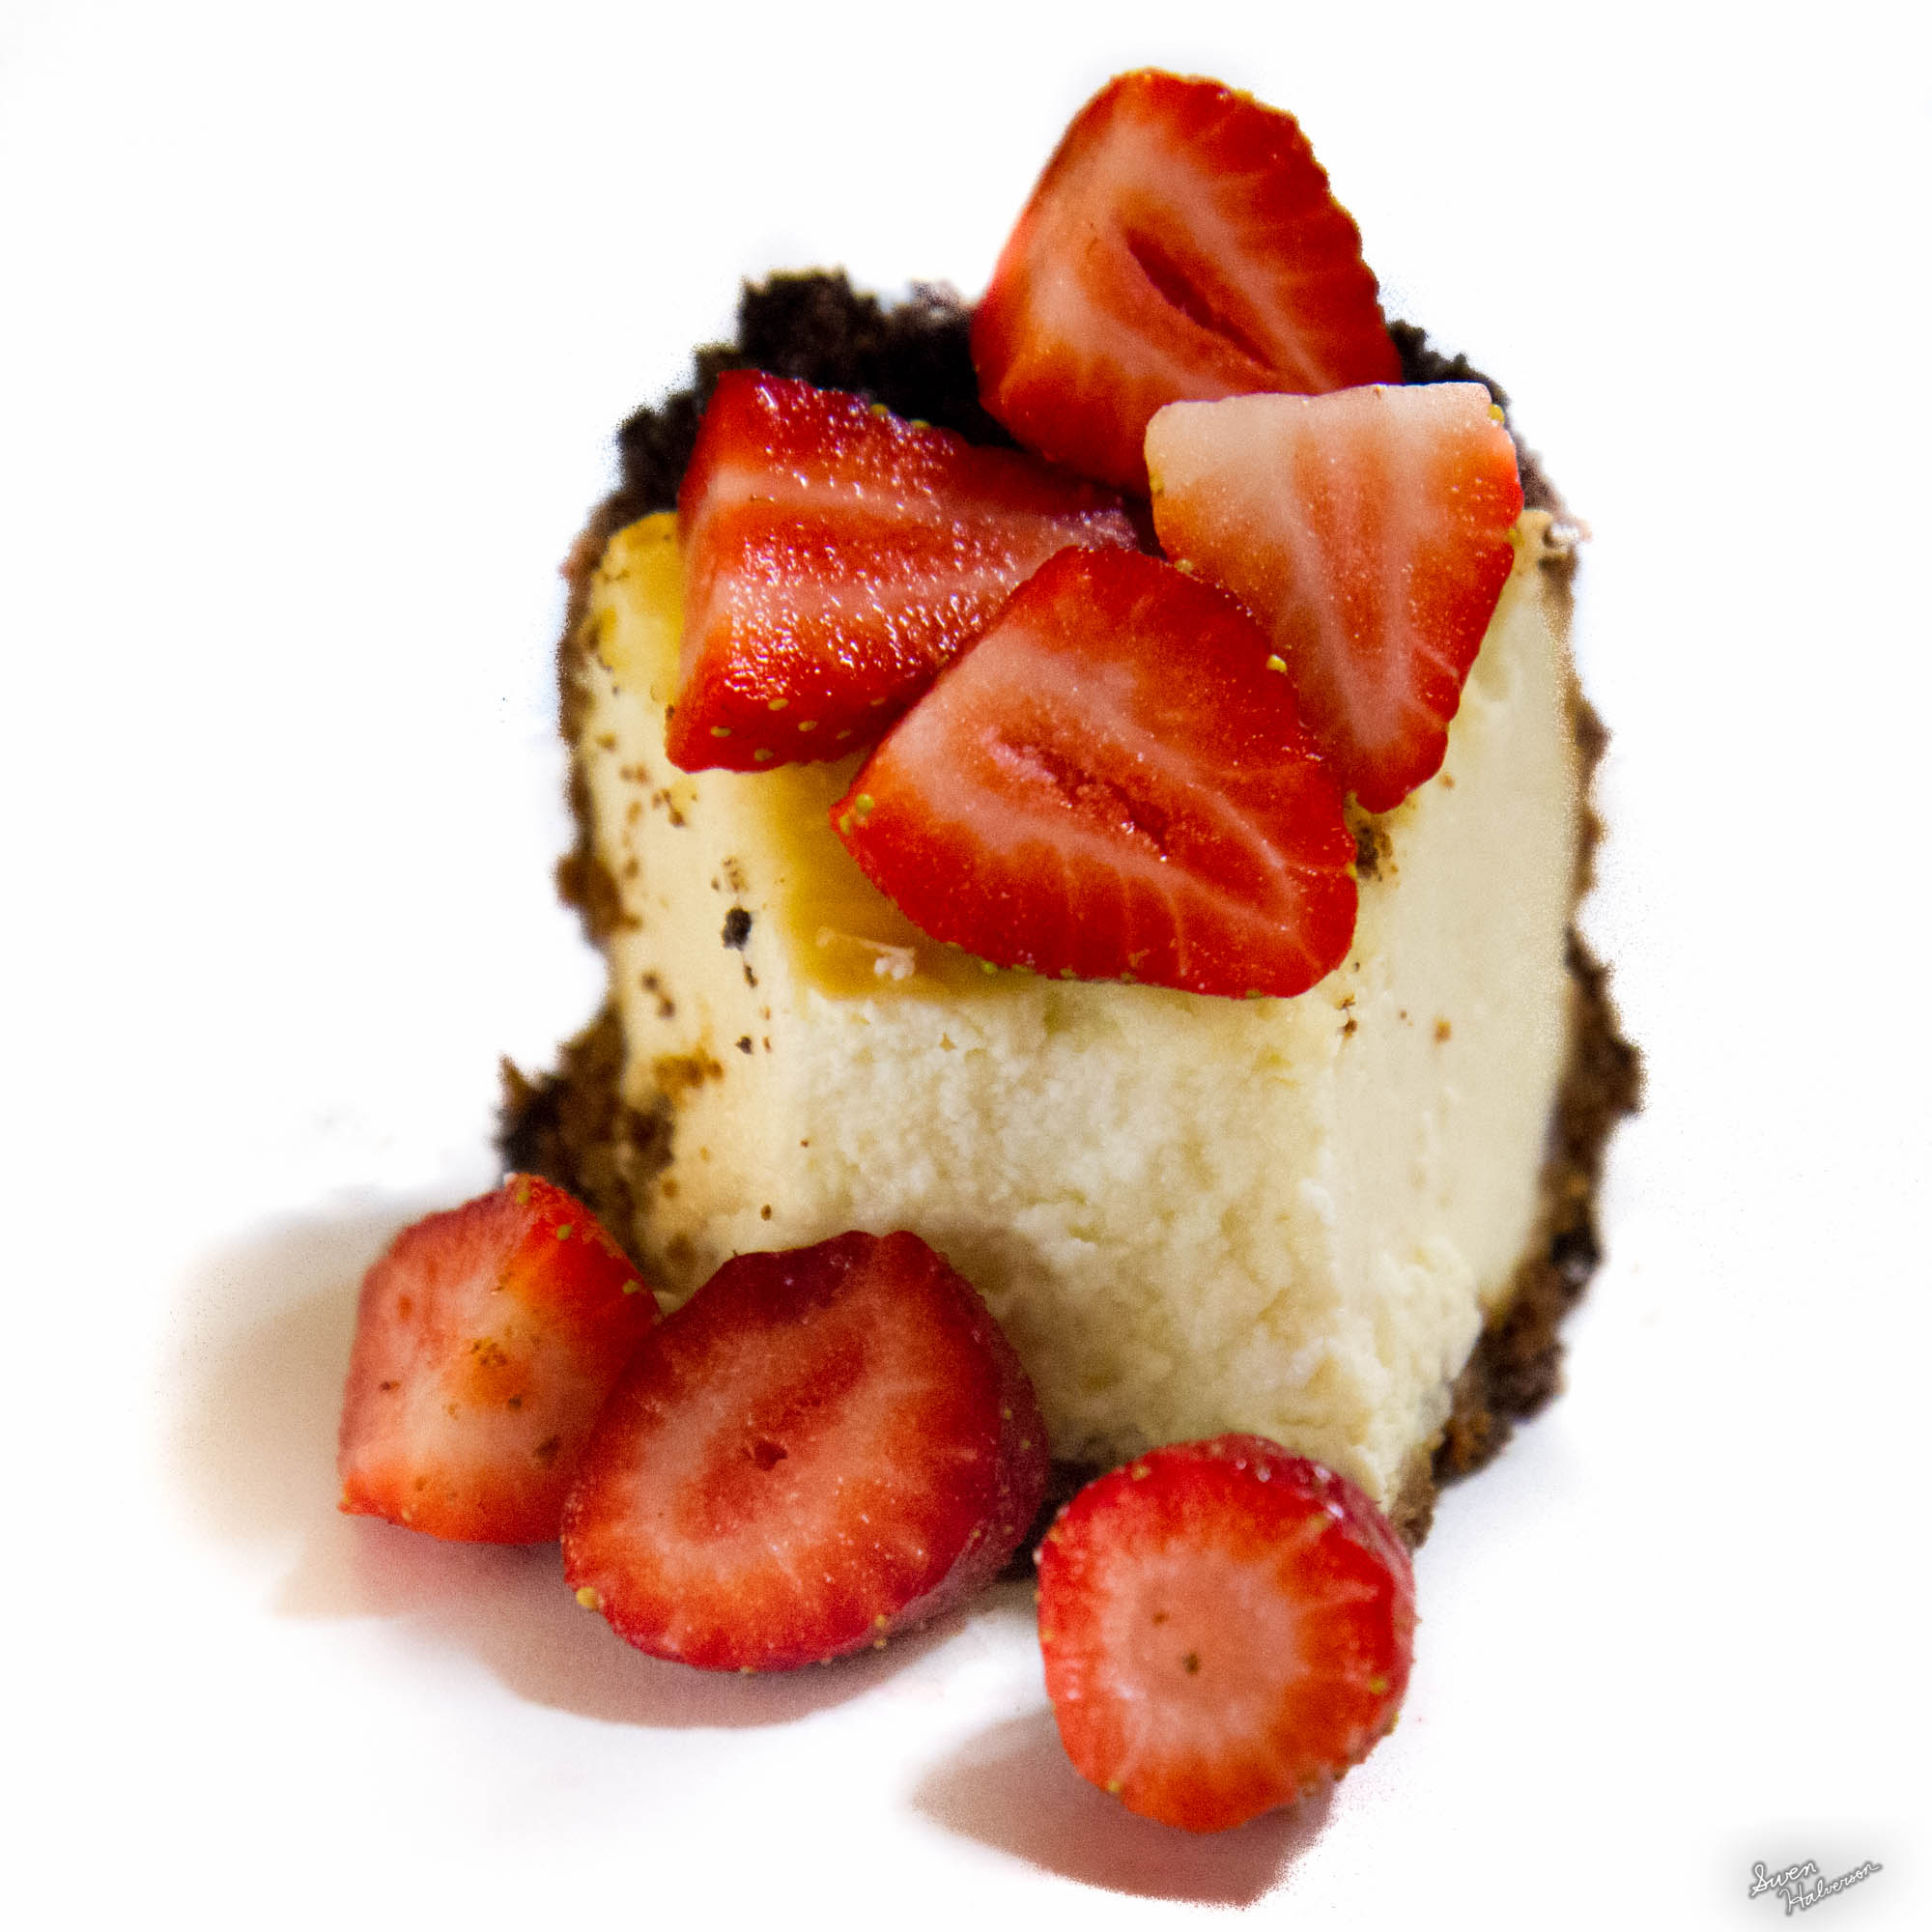 Theme: Miniature Title: Strawberry Cheese Cake